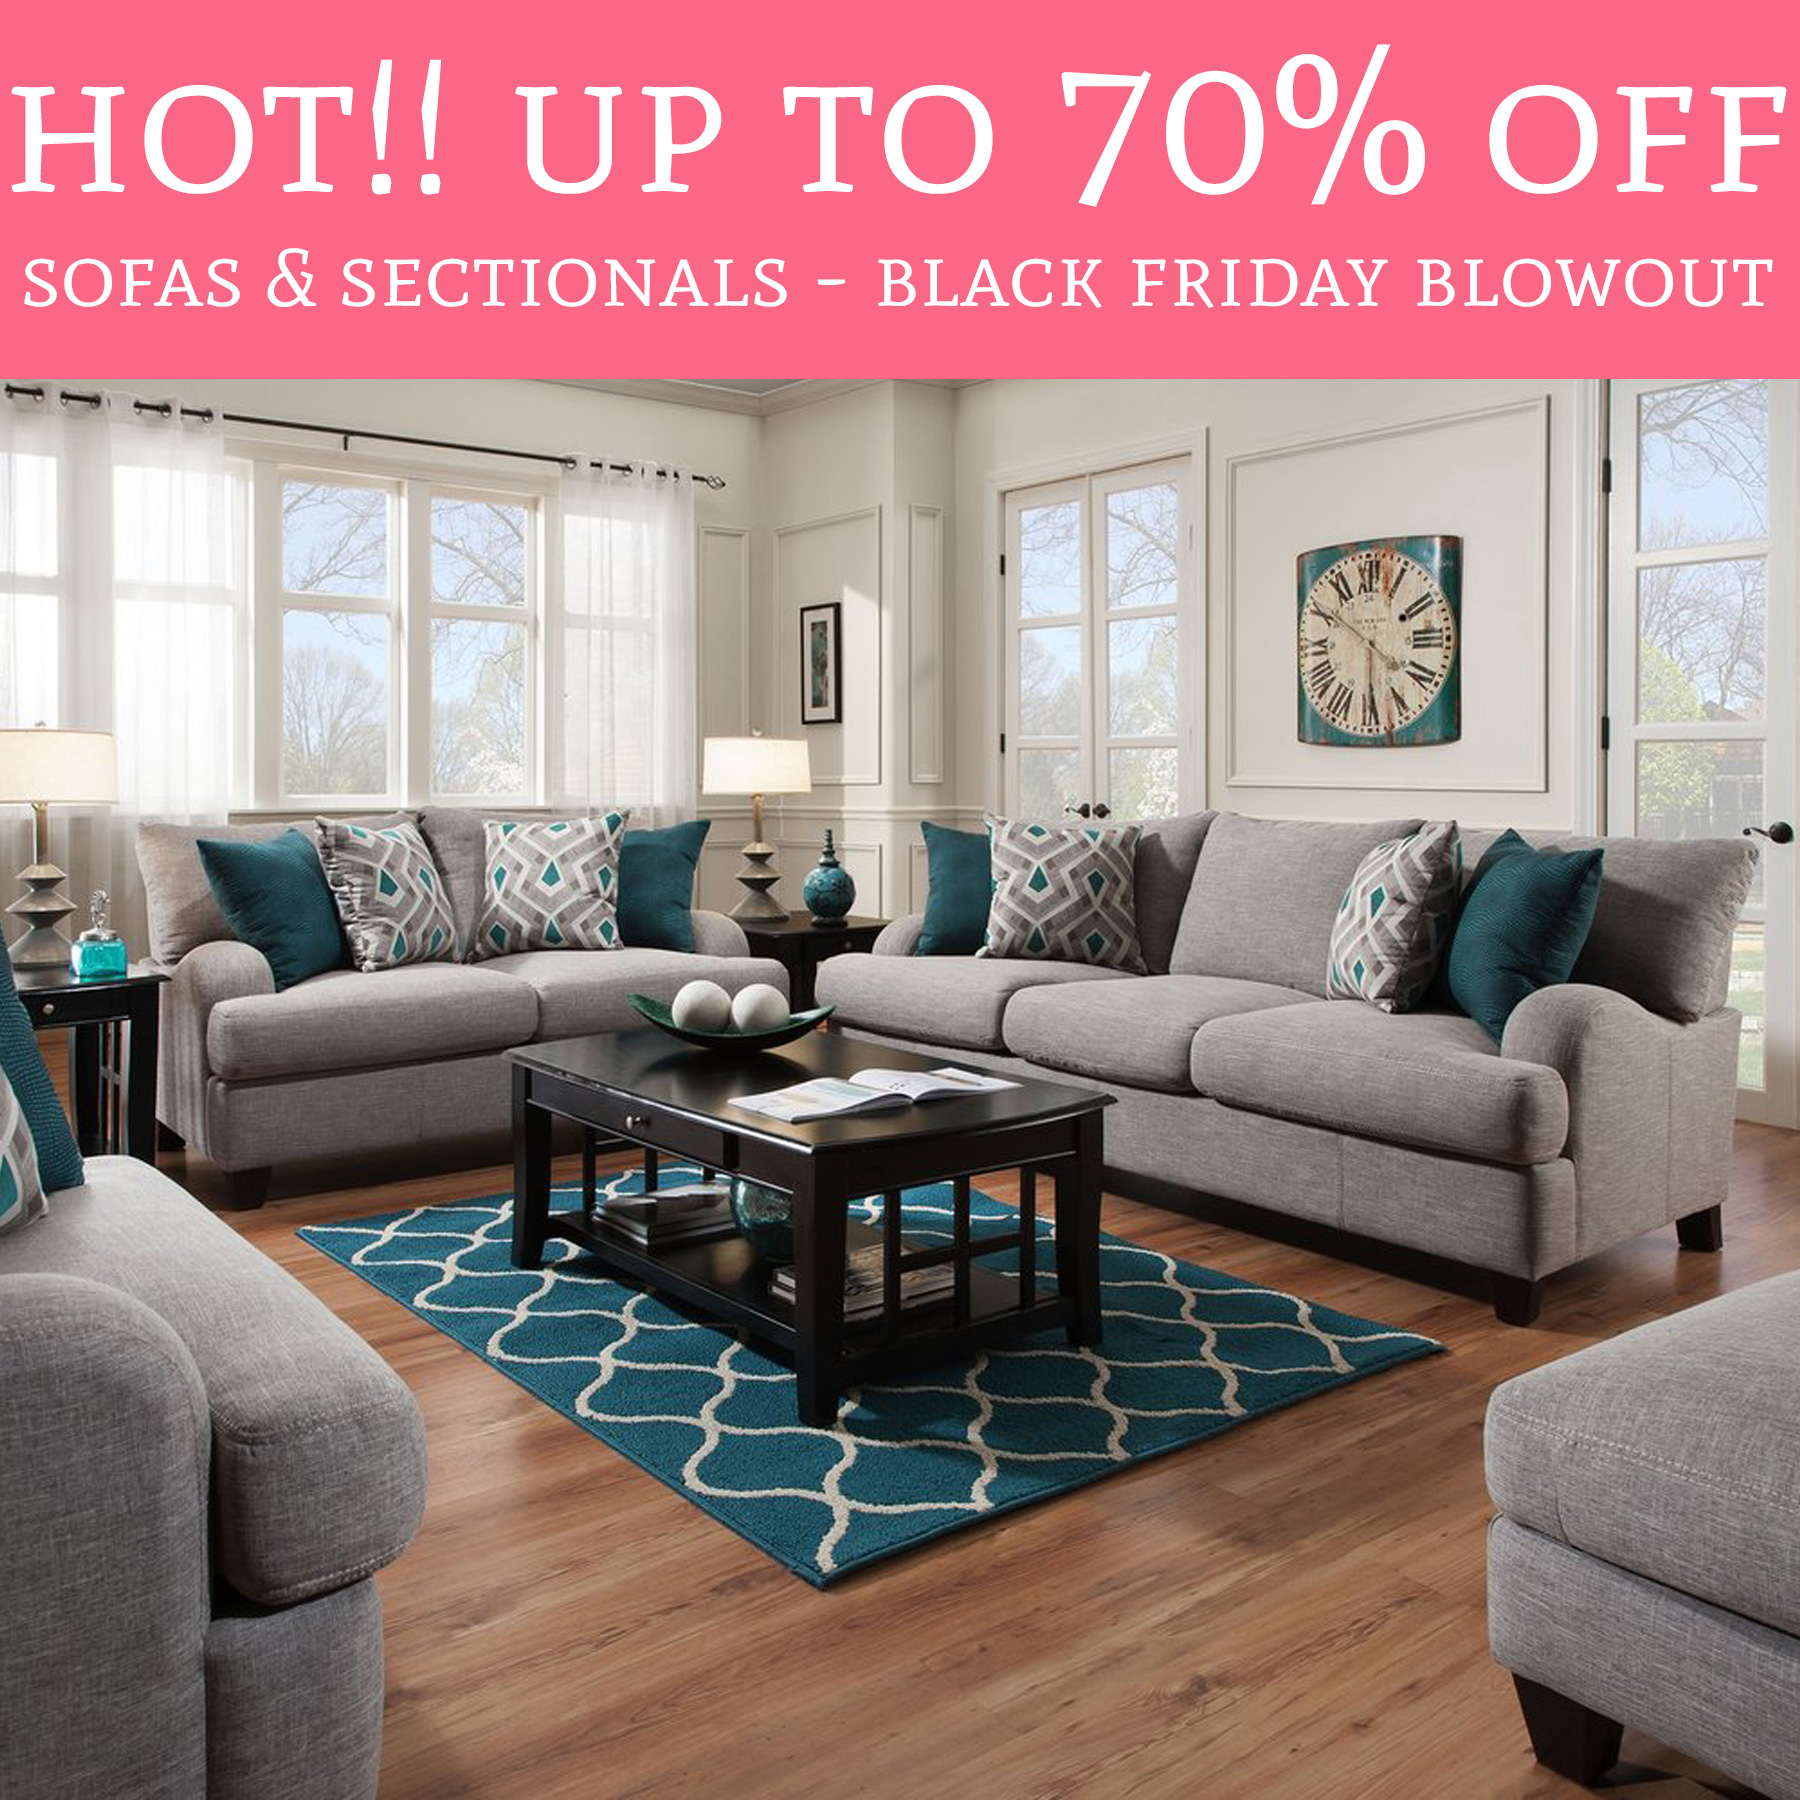 Black Friday Couch Deals: HOT!! Black Friday Blowout Sale! Up To 70% Off Sofas